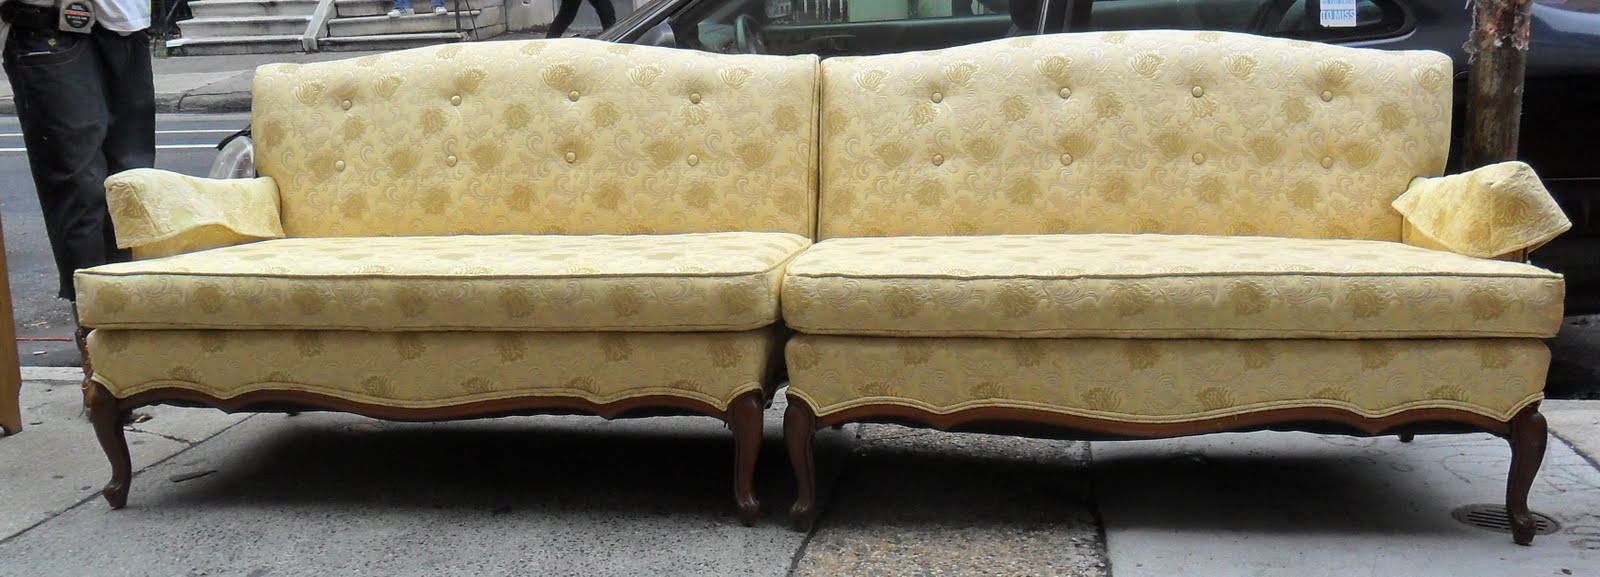 Exceptionnel Beautiful French Provincial Sectional Sofa SOLD